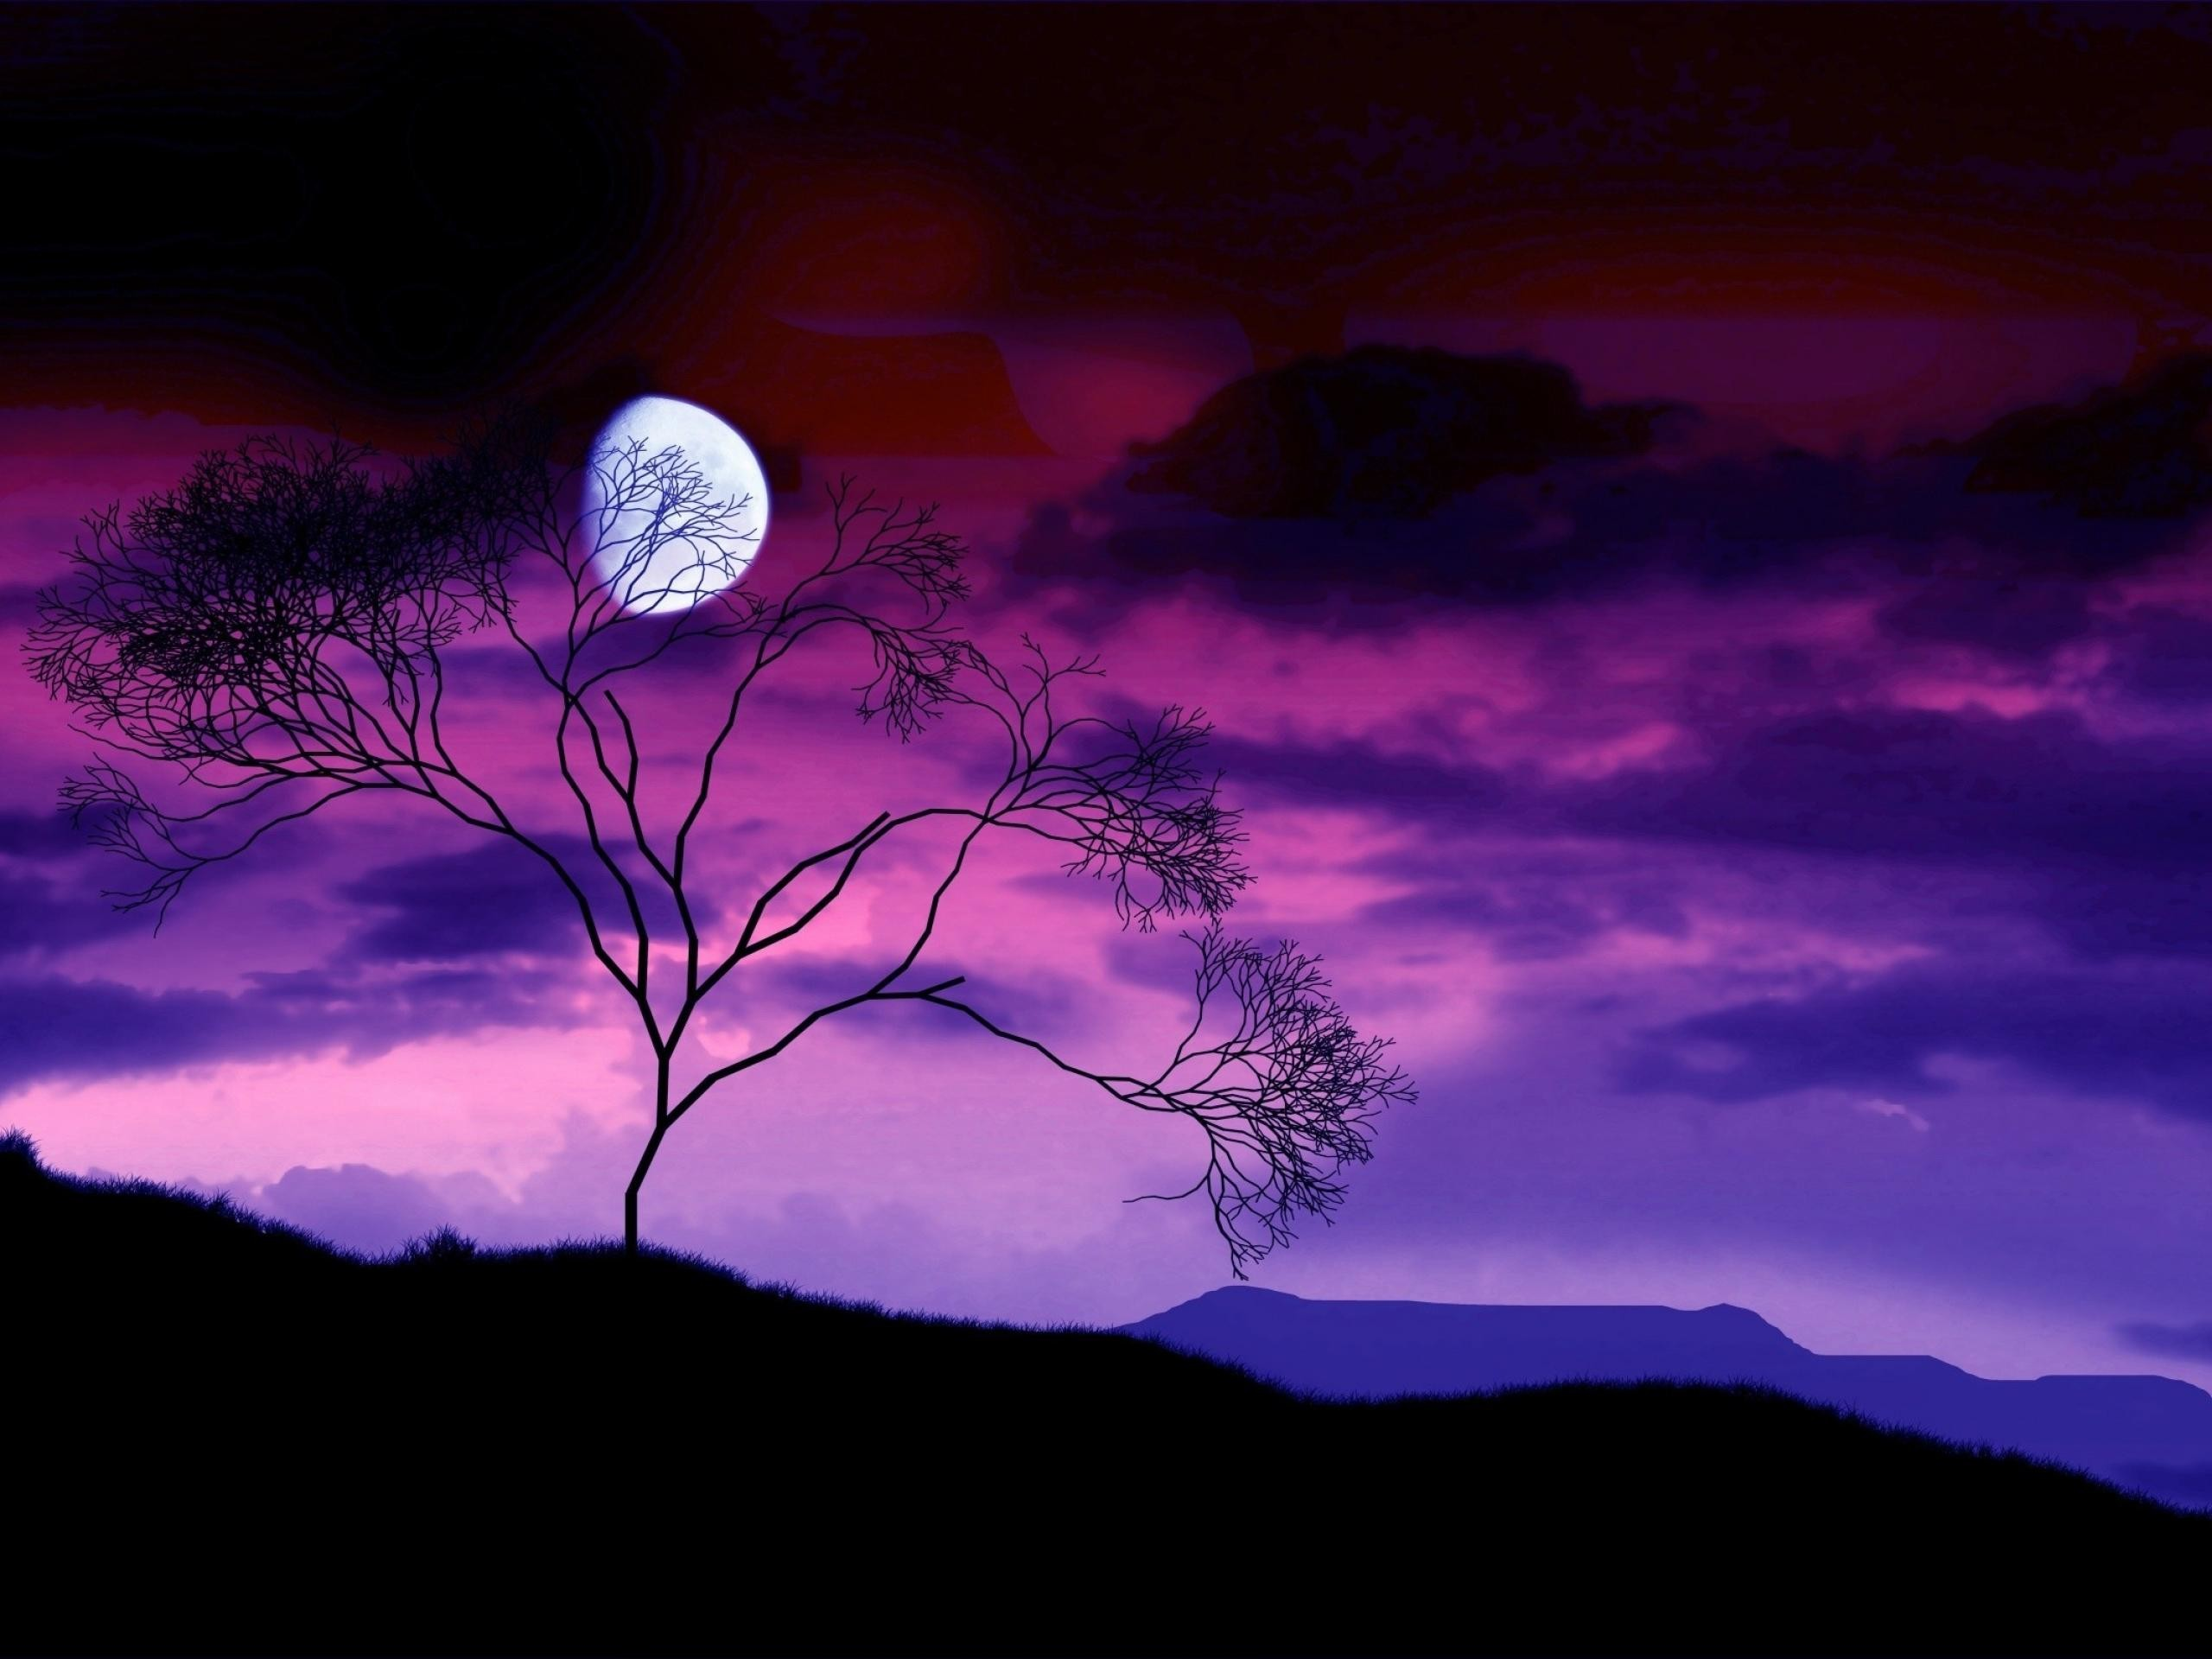 Moon landscapes behind tree scenery scenes worlds wallpaper environments  night garden earth countryside desert sky